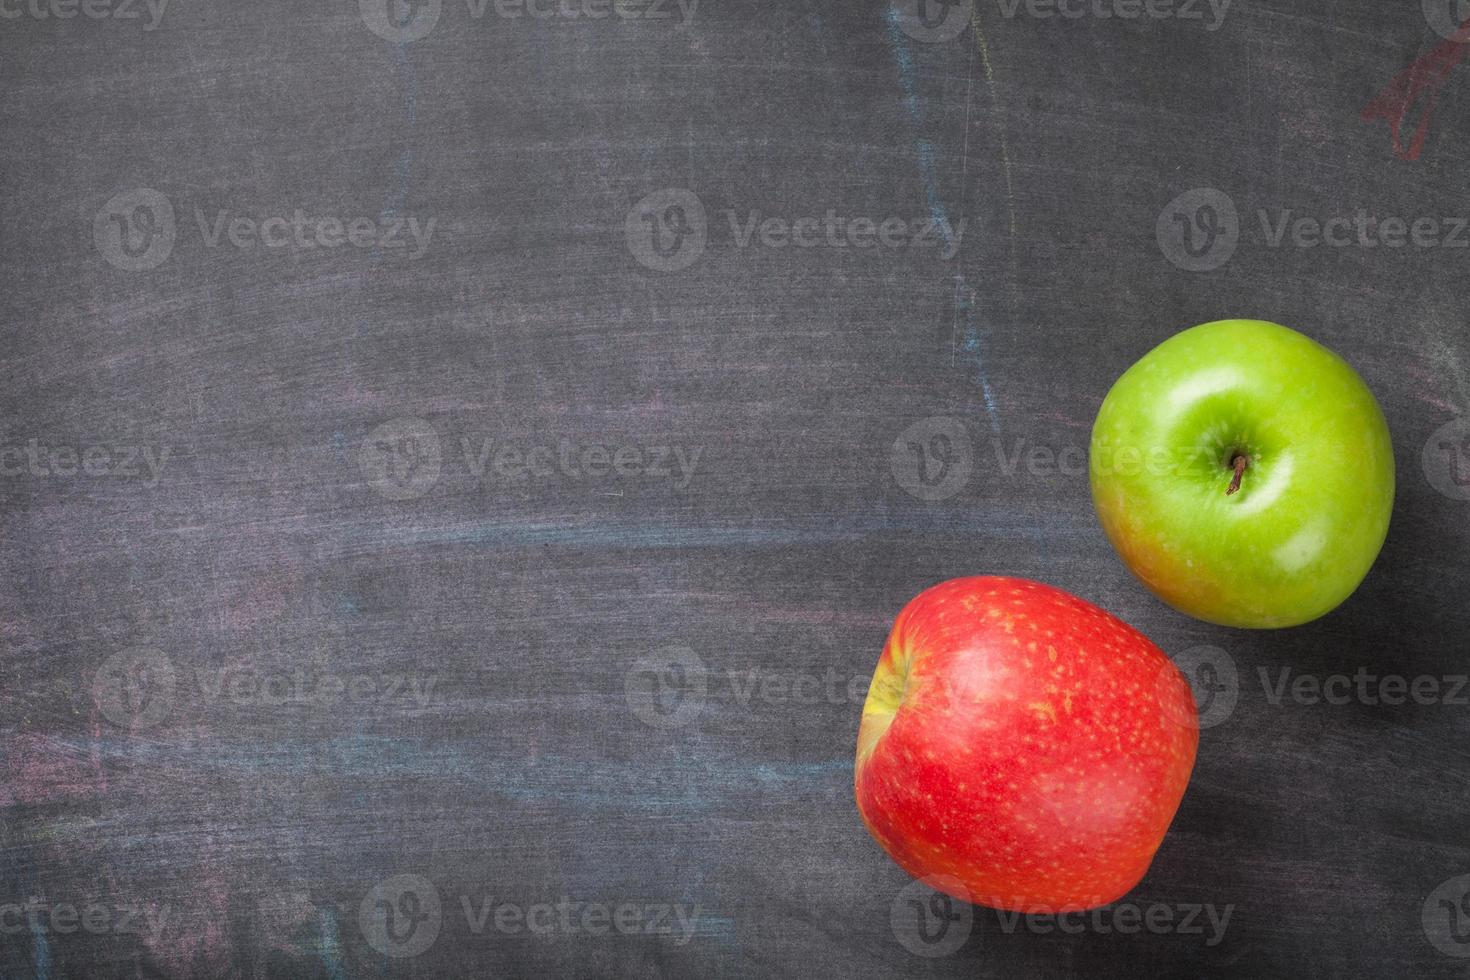 Green and red apples on blackboard or chalkboard background photo